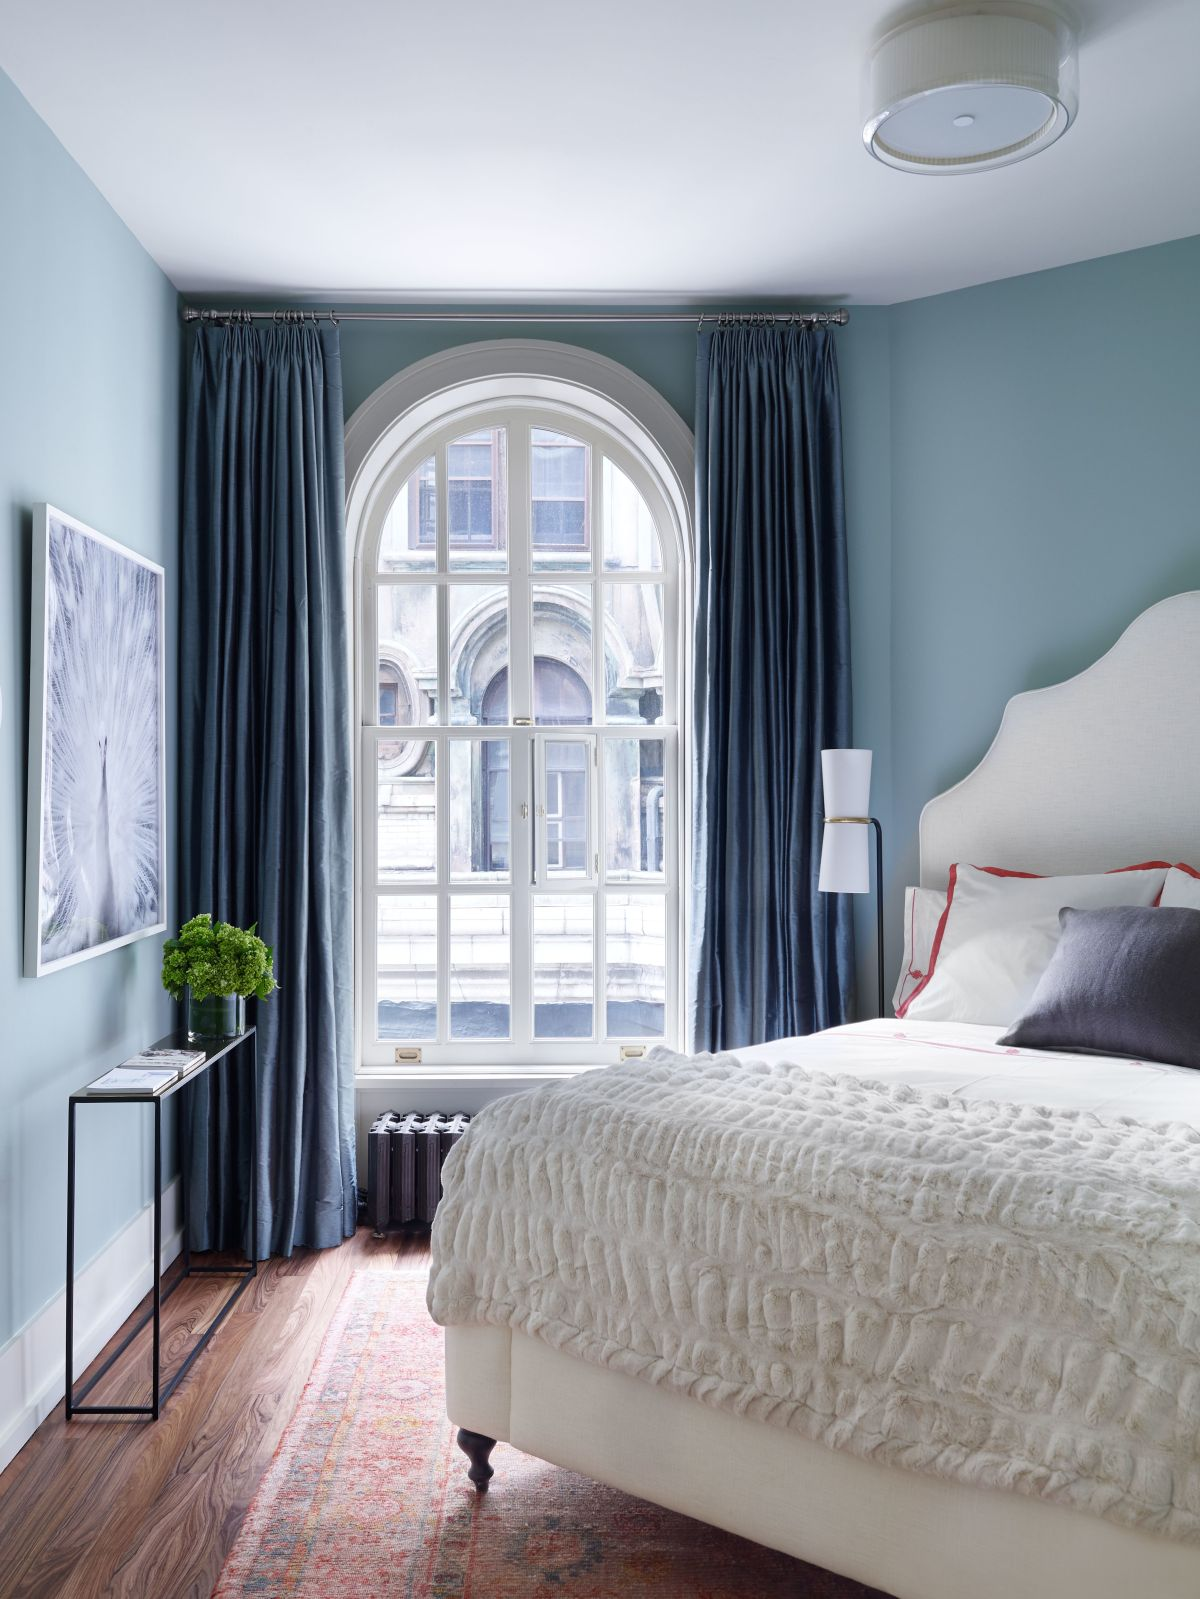 surprising Recommended Colors For Bedroom Part - 6: View in gallery